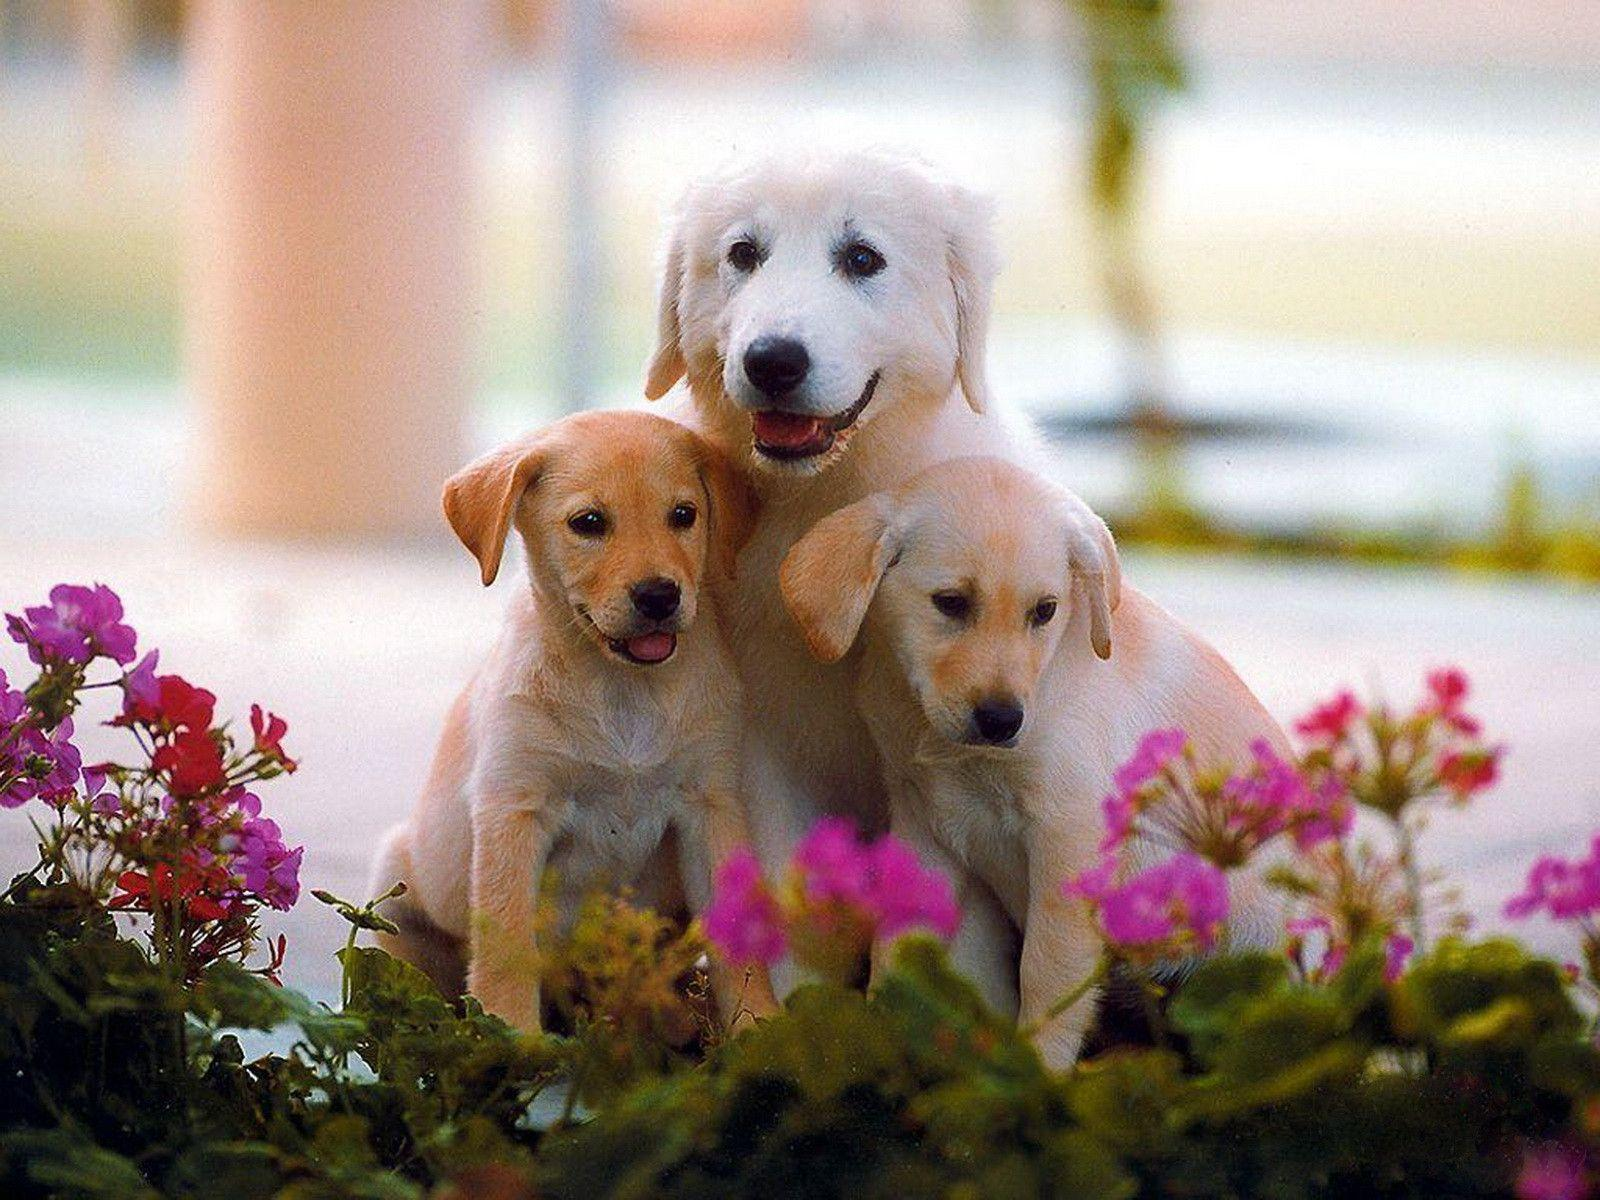 Sweet Dogs Wallpaper Cute Dog Wallpapers - ...